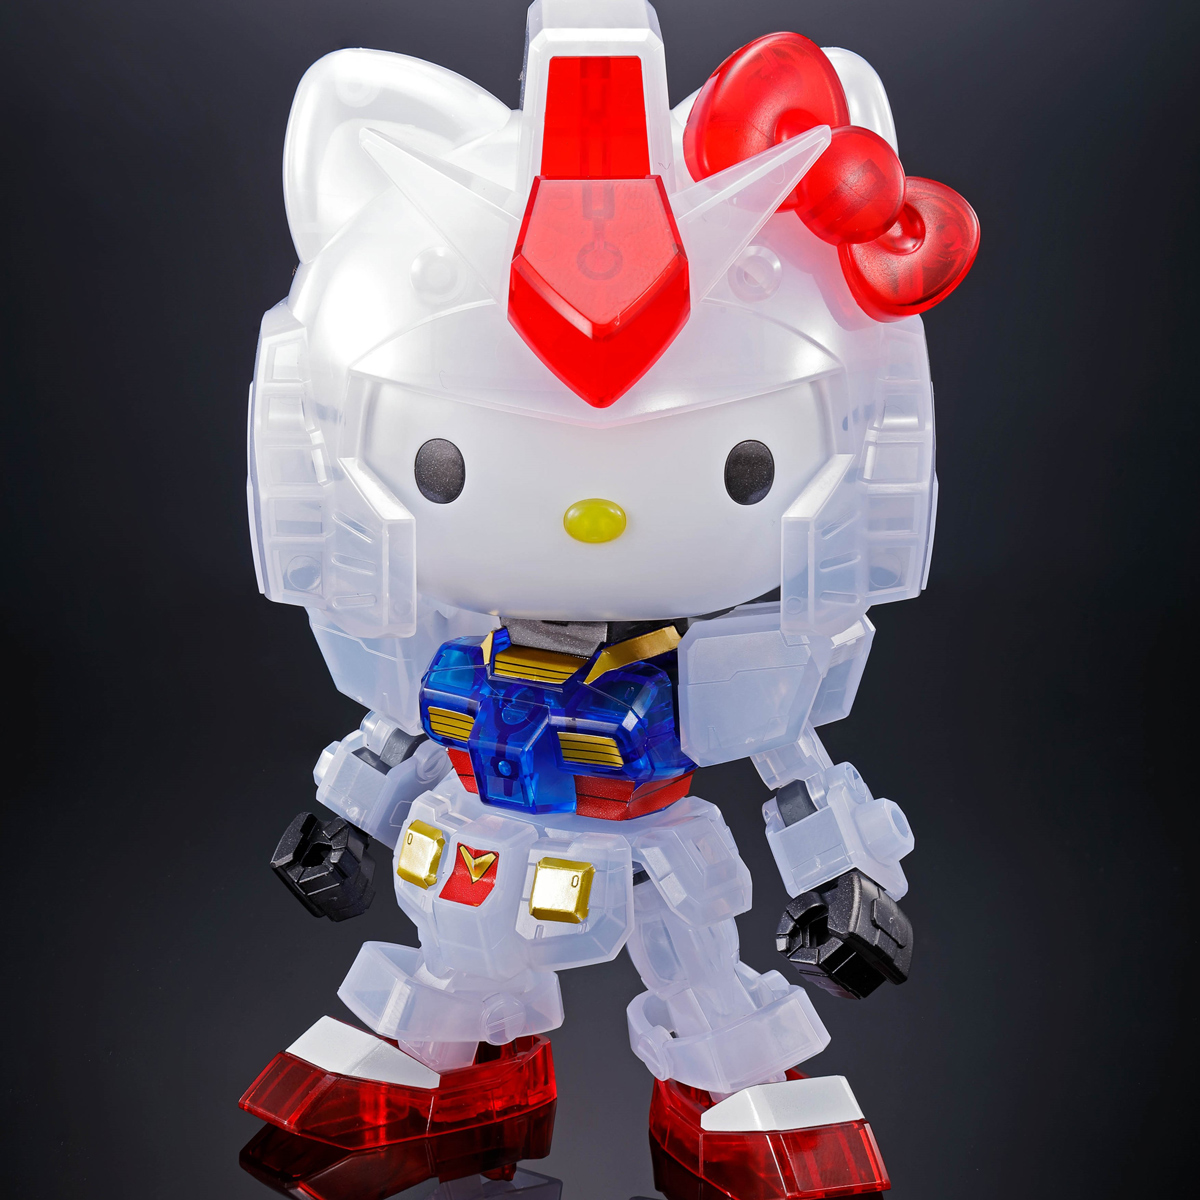 HELLO KITTY/RX-78-2 GUNDAM[SD EX-STANDARD] [CLEAR COLOR][Sep 2020 Delivery]